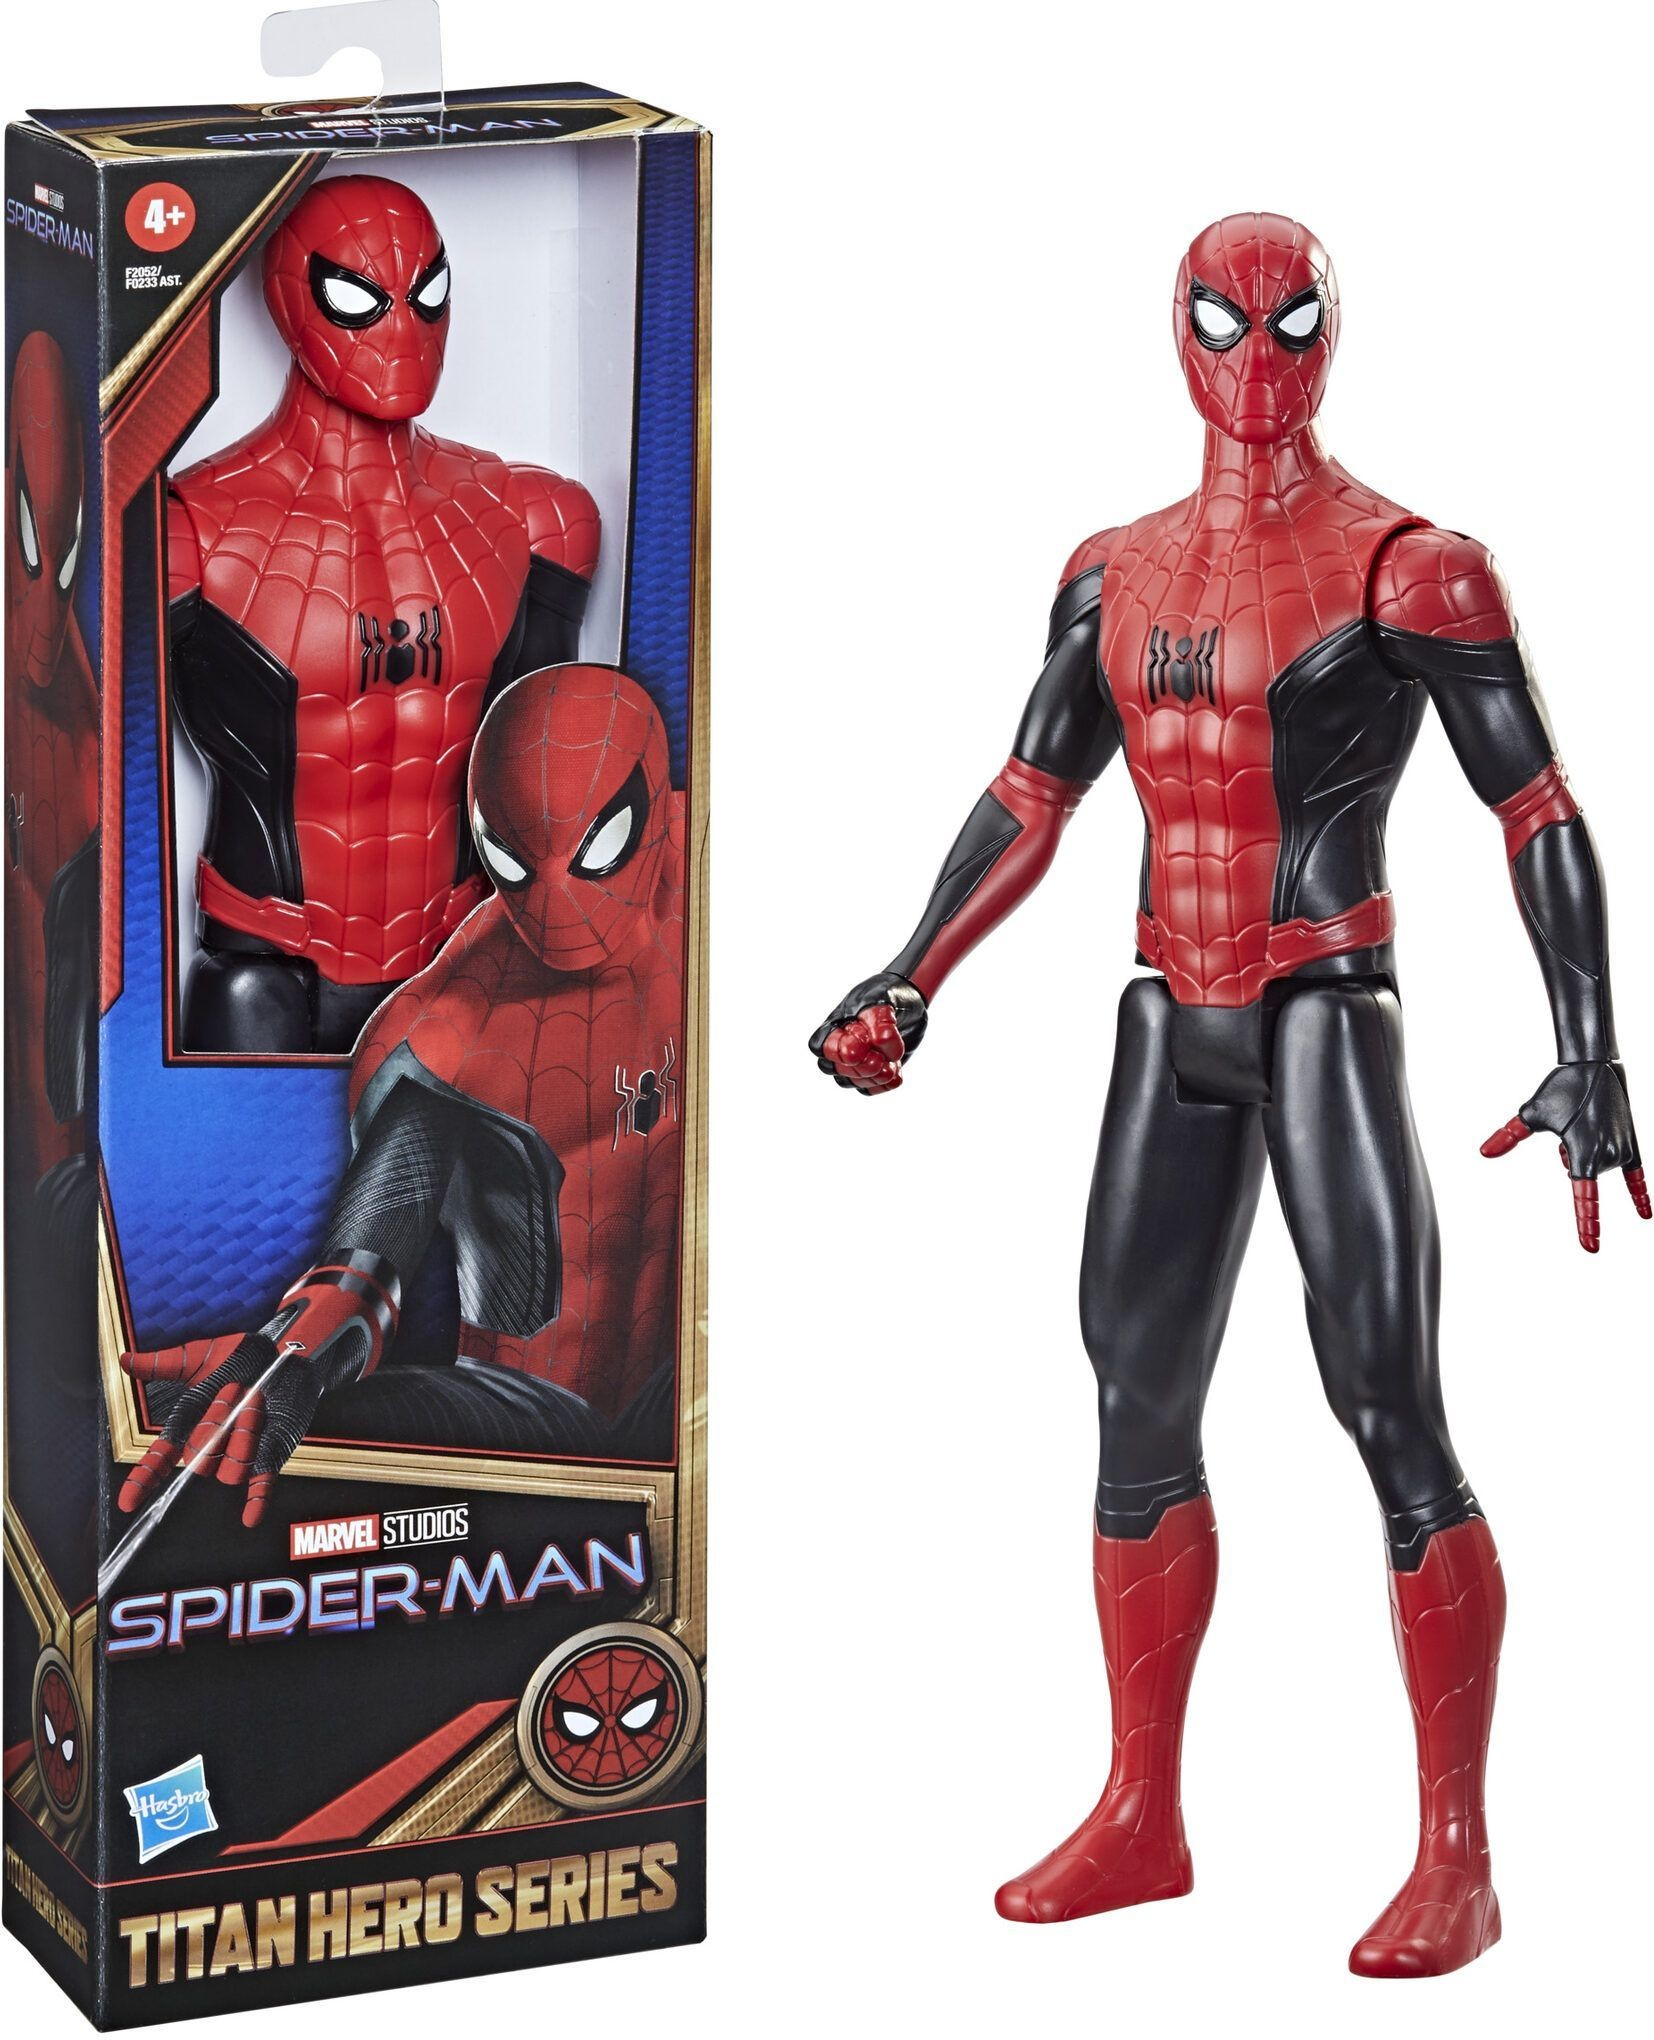 B6609 / B5790 Spider-Man Marvel Titan Hero Series Spider-Man Figure 30cm